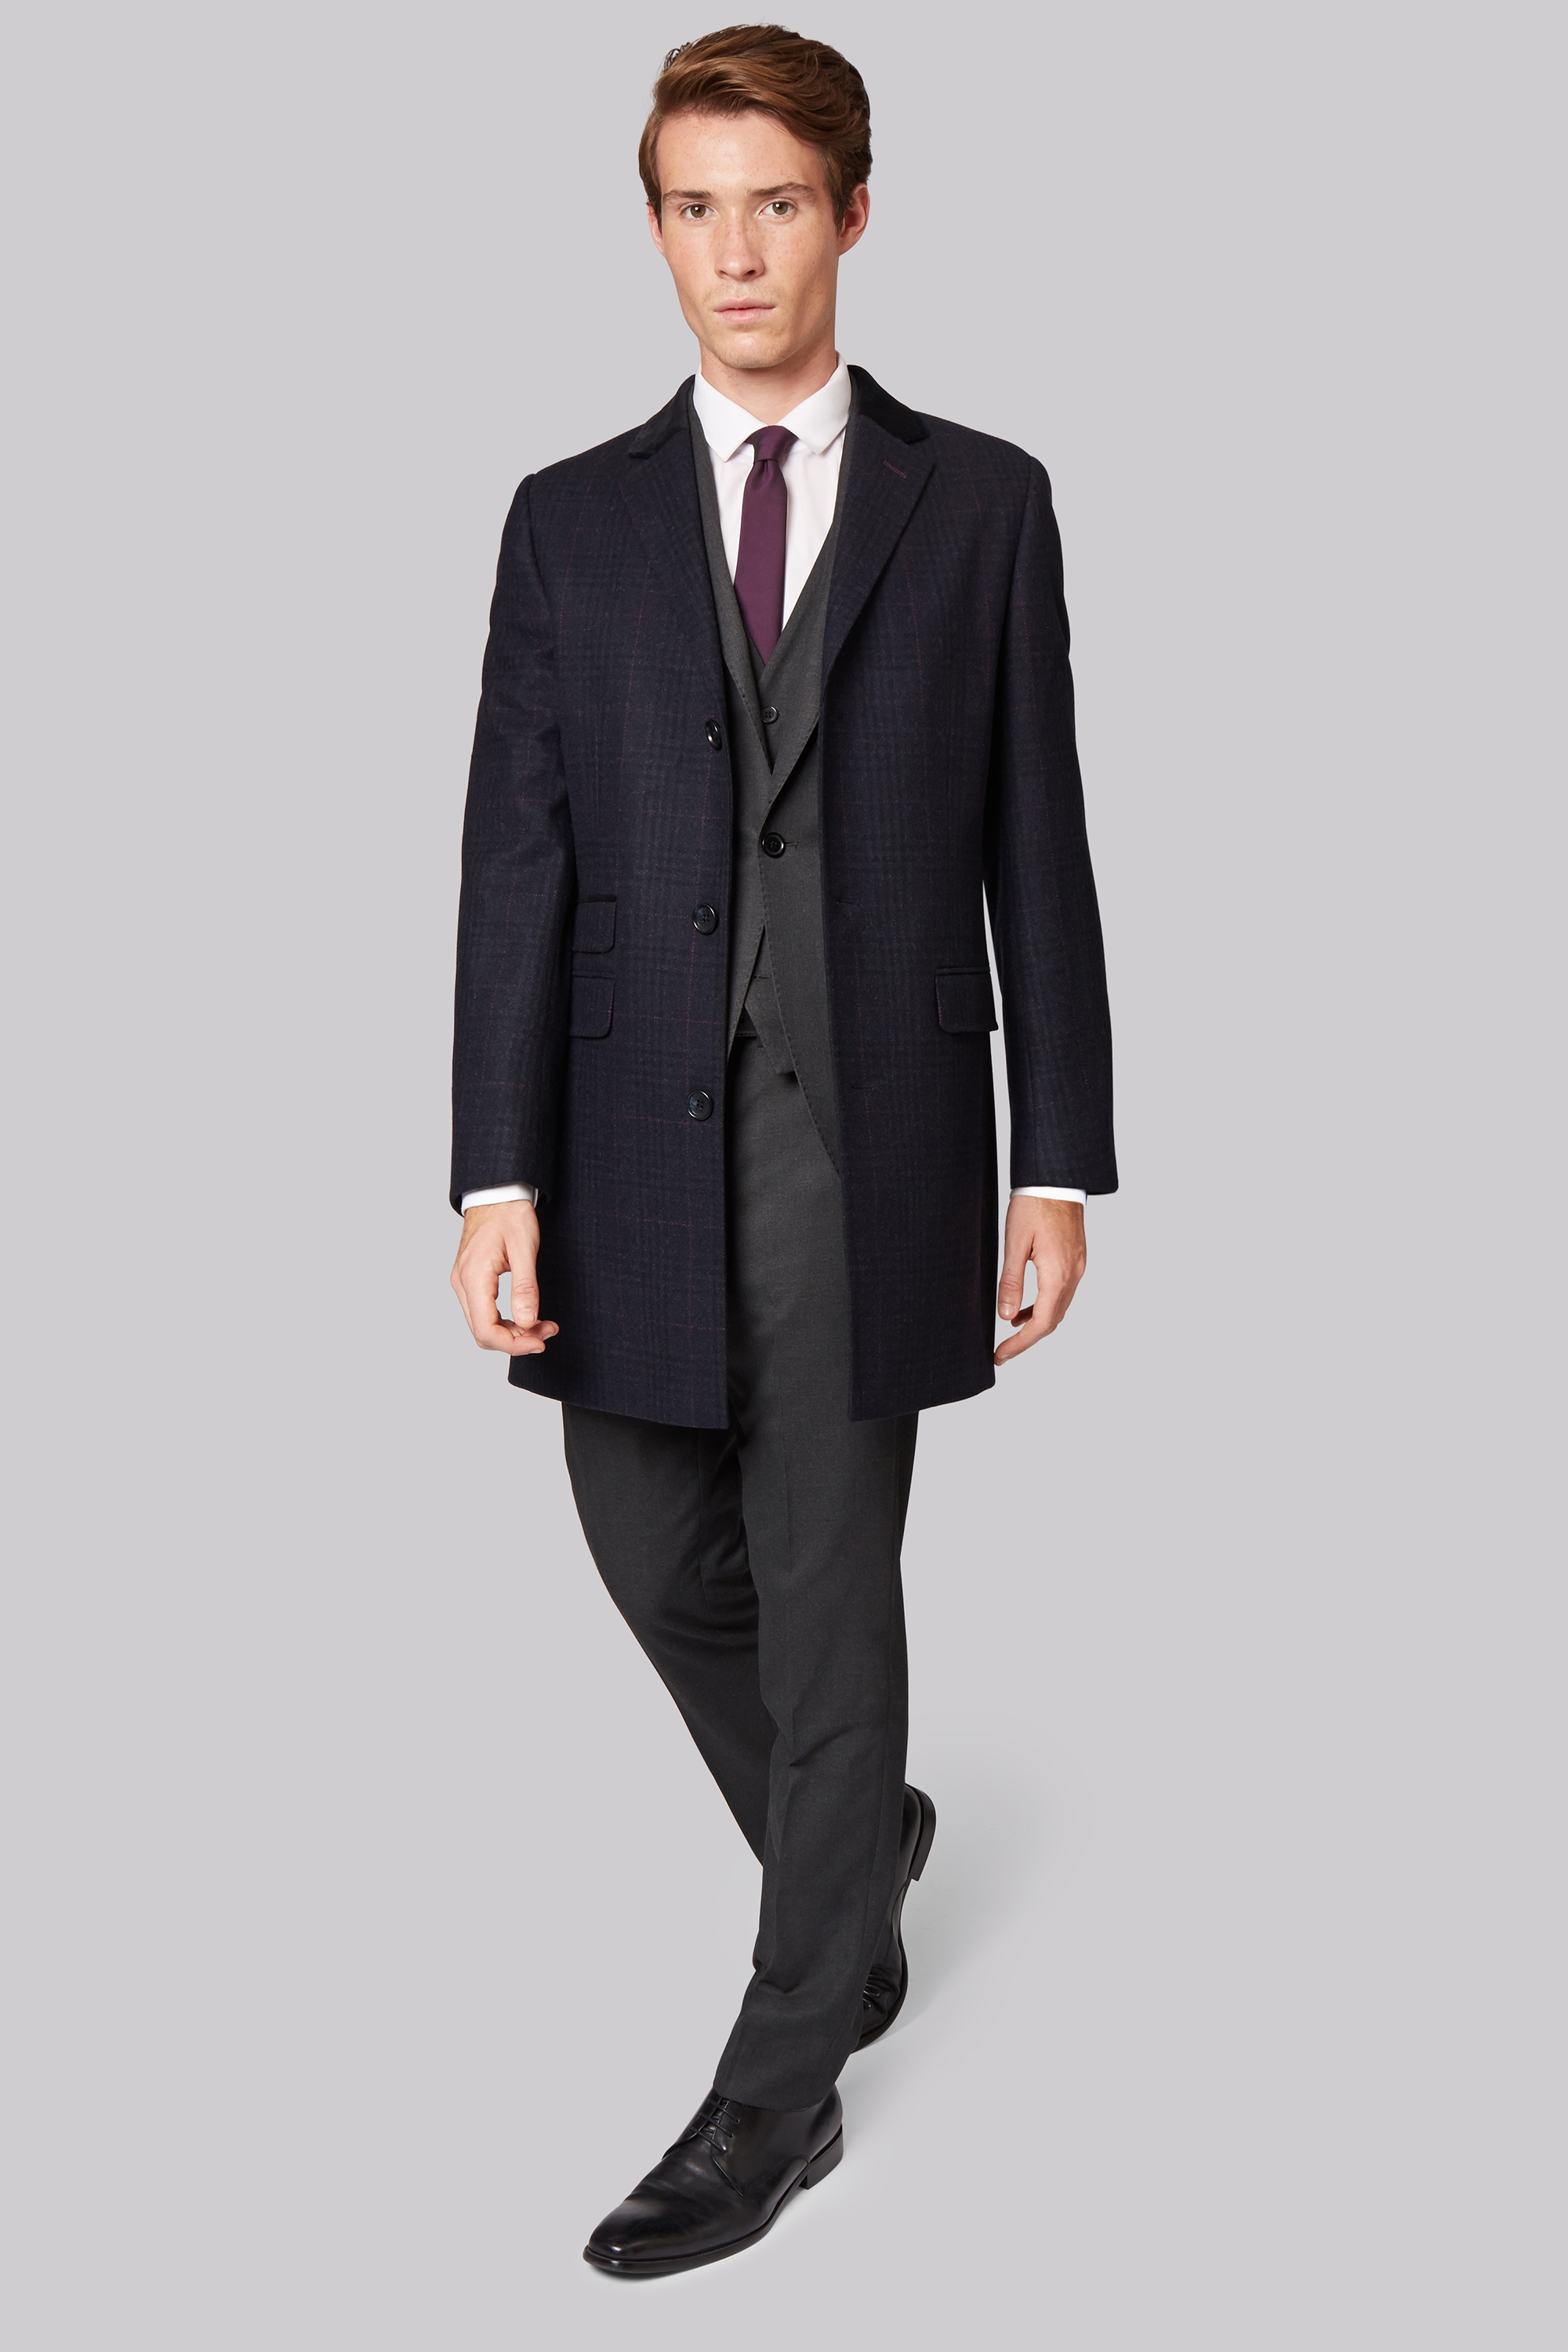 Check out a heavyweight overcoat from Ralph Lauren, finished with a sharp velvet collar. If blue's your color, a comfortable mid-weight option from Tommy Hilfiger in a modern navy hue is a great choice, or go with a statement overcoat in cool olive green.